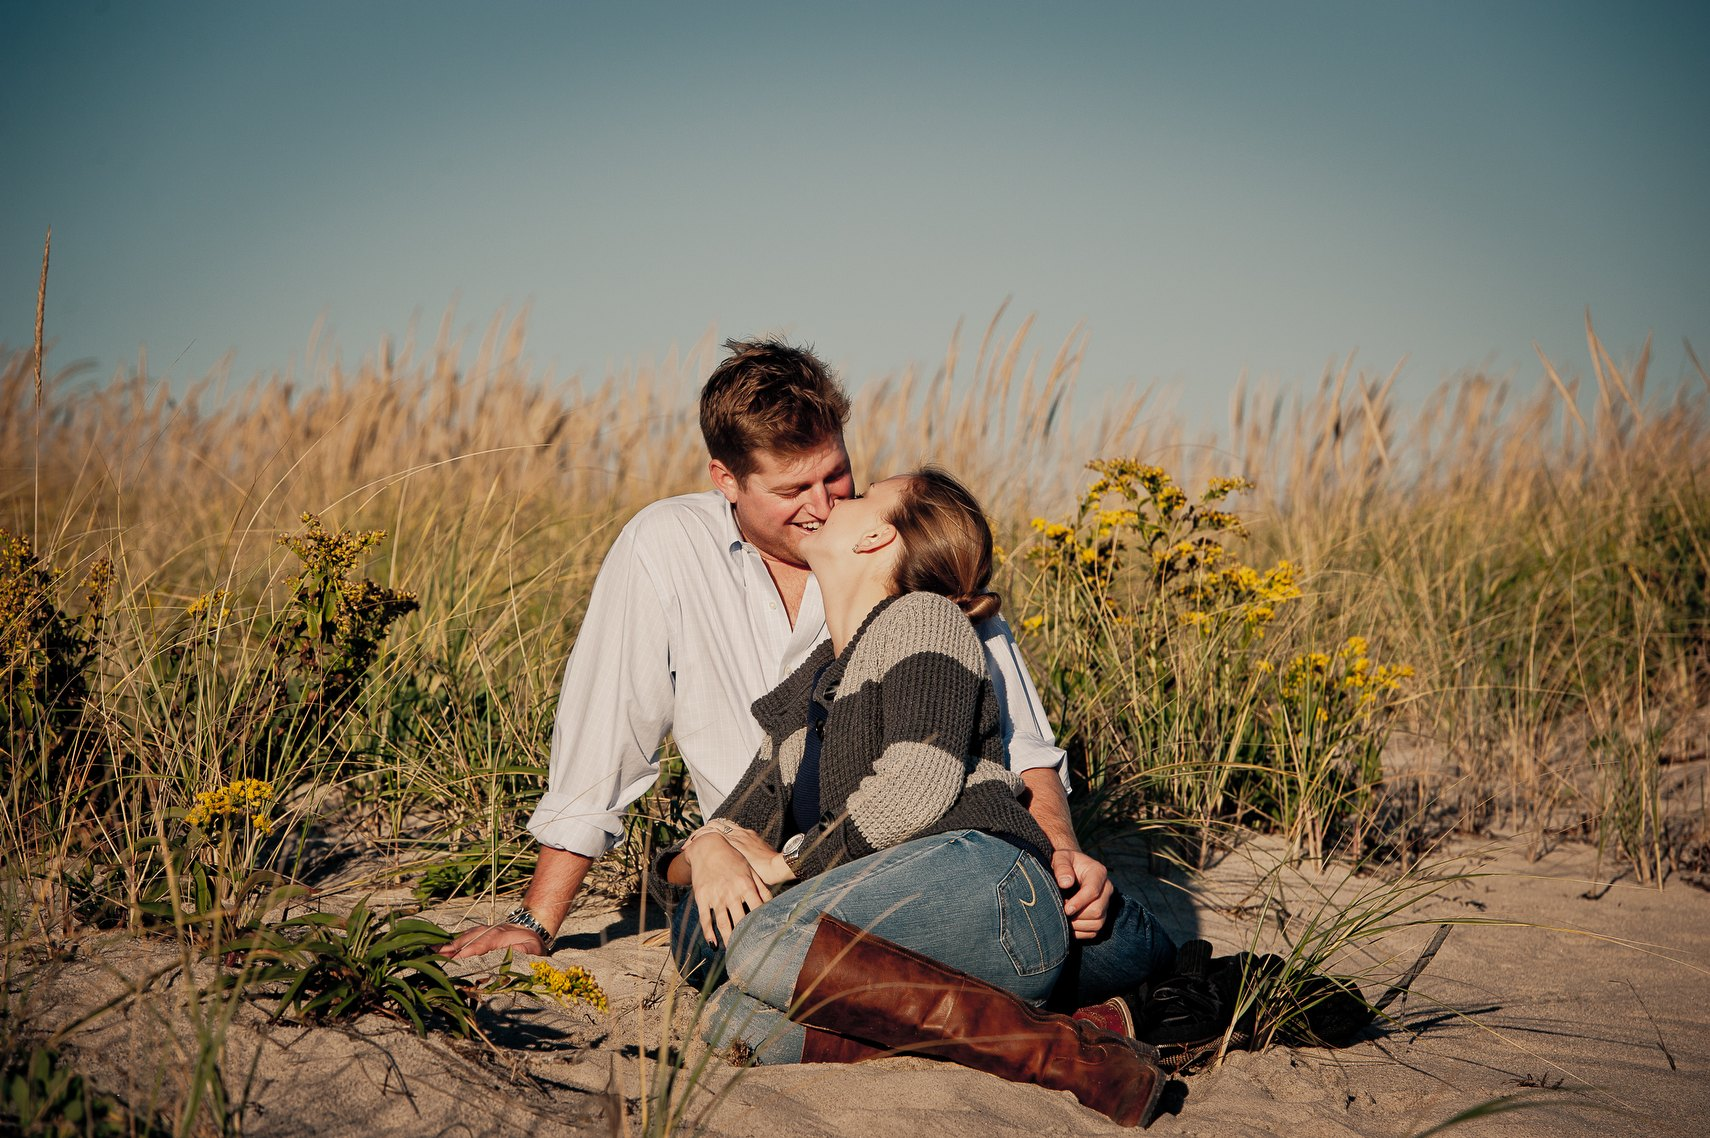 Hamptons-Engagements-Photography-0040.JPG